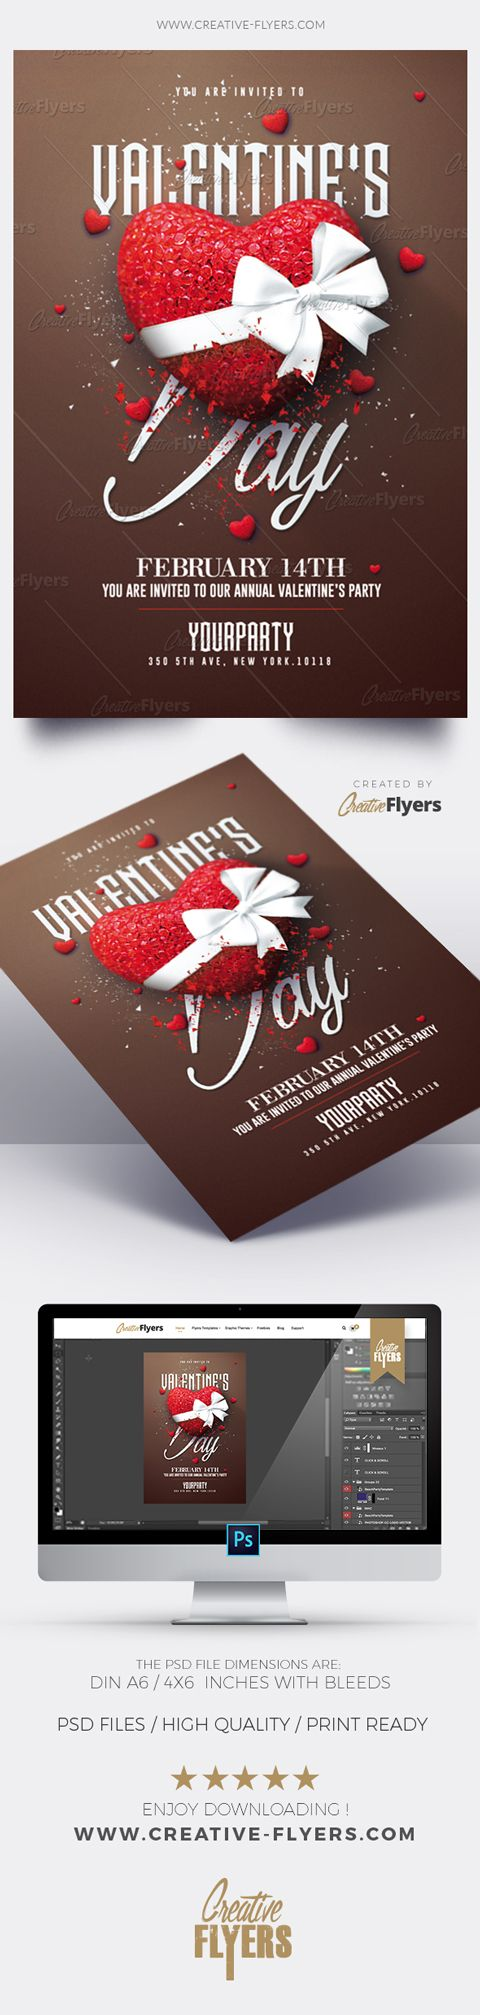 Creative Valentine's Day Flyer Enjoy downloading the Premium Photoshop PSD Flyer / poster Template designed by Creative Flyers perfect to promote your Valentine's Day Party ! #valentinesday #flyers #templates #invitation #creativeflyers